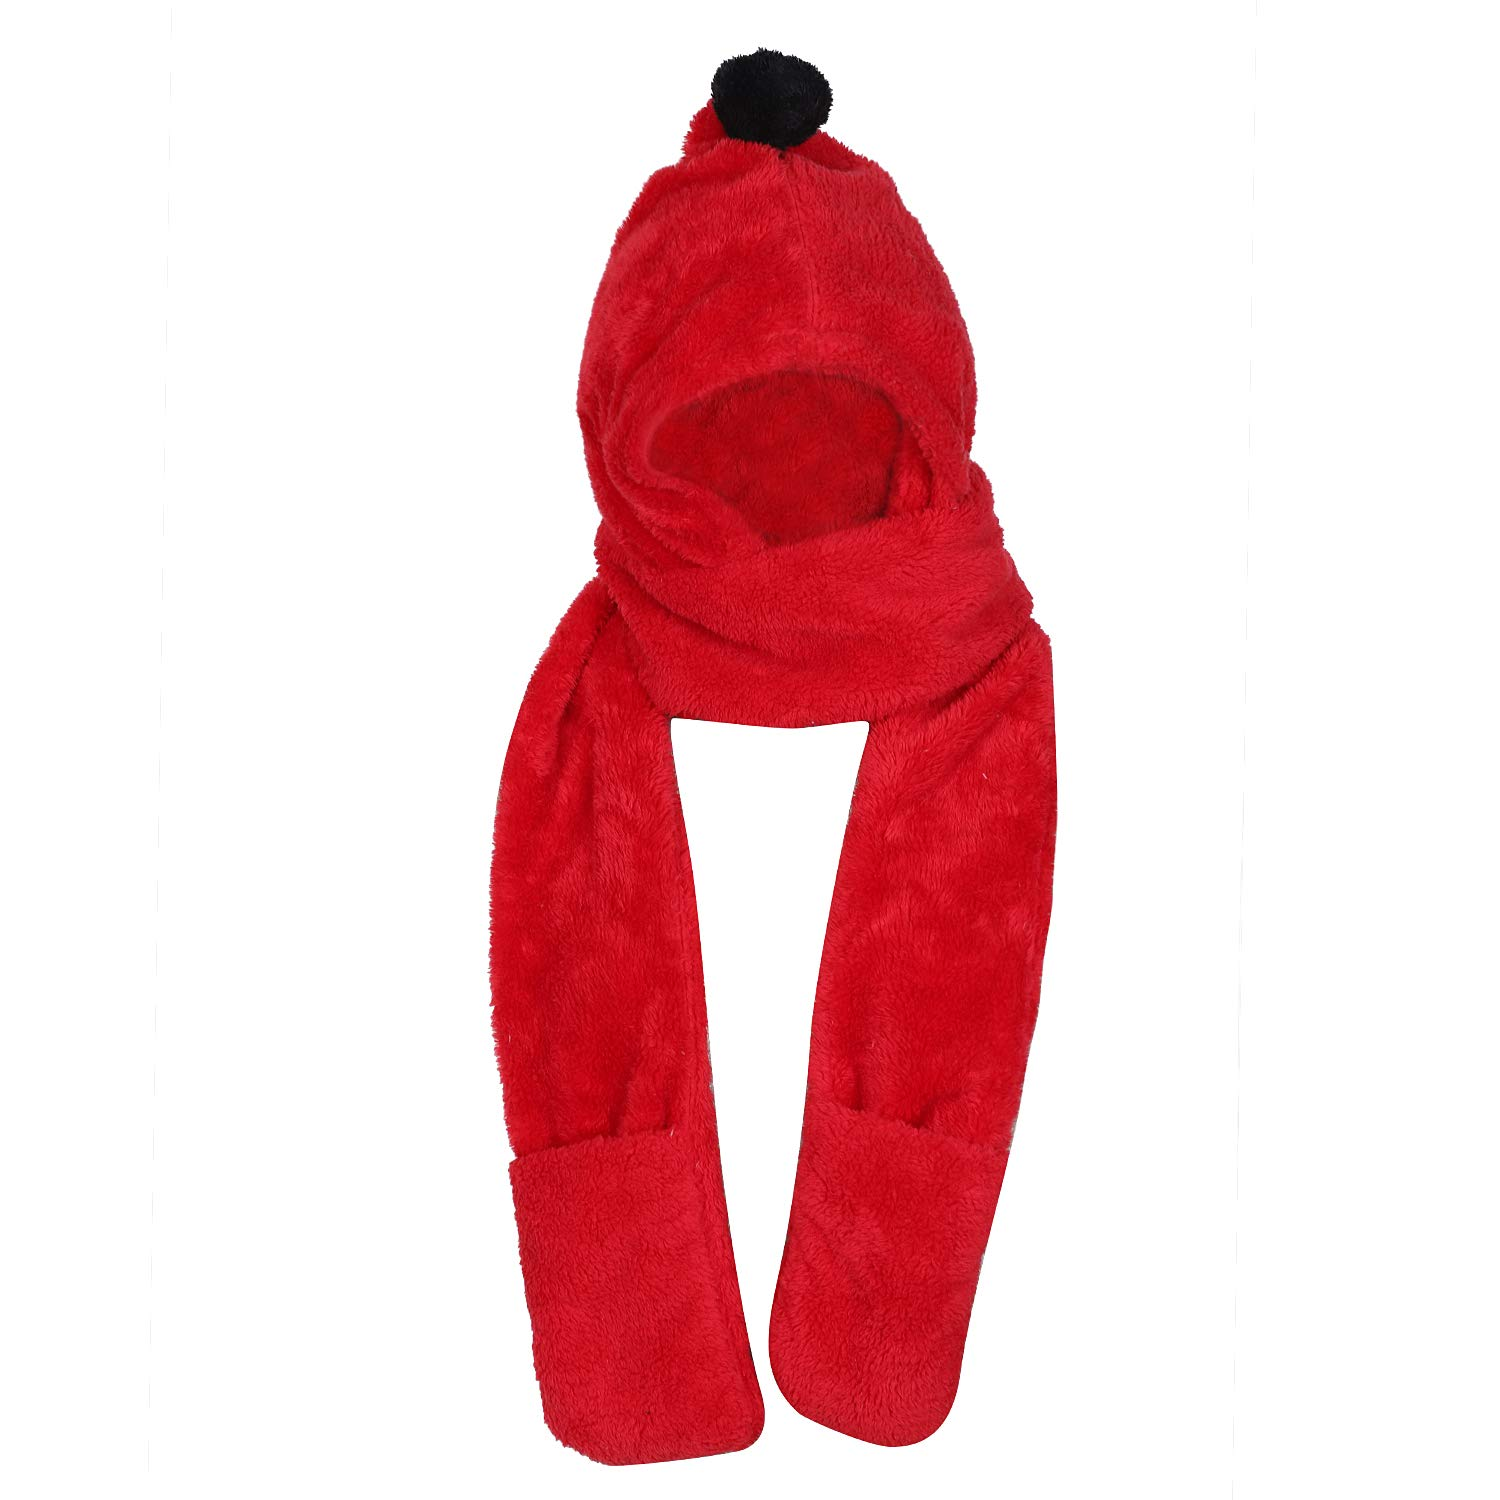 Children Cute Hooded Scarf Hats Gloves 3-In-1 Set Thermal Fleece Beanie Hat Earflaps Long Plush Scarfs Ski Snowboarding Hat Mittens with Pompom for Kids Over 3 Years Old Best Birthday Christmas Gift